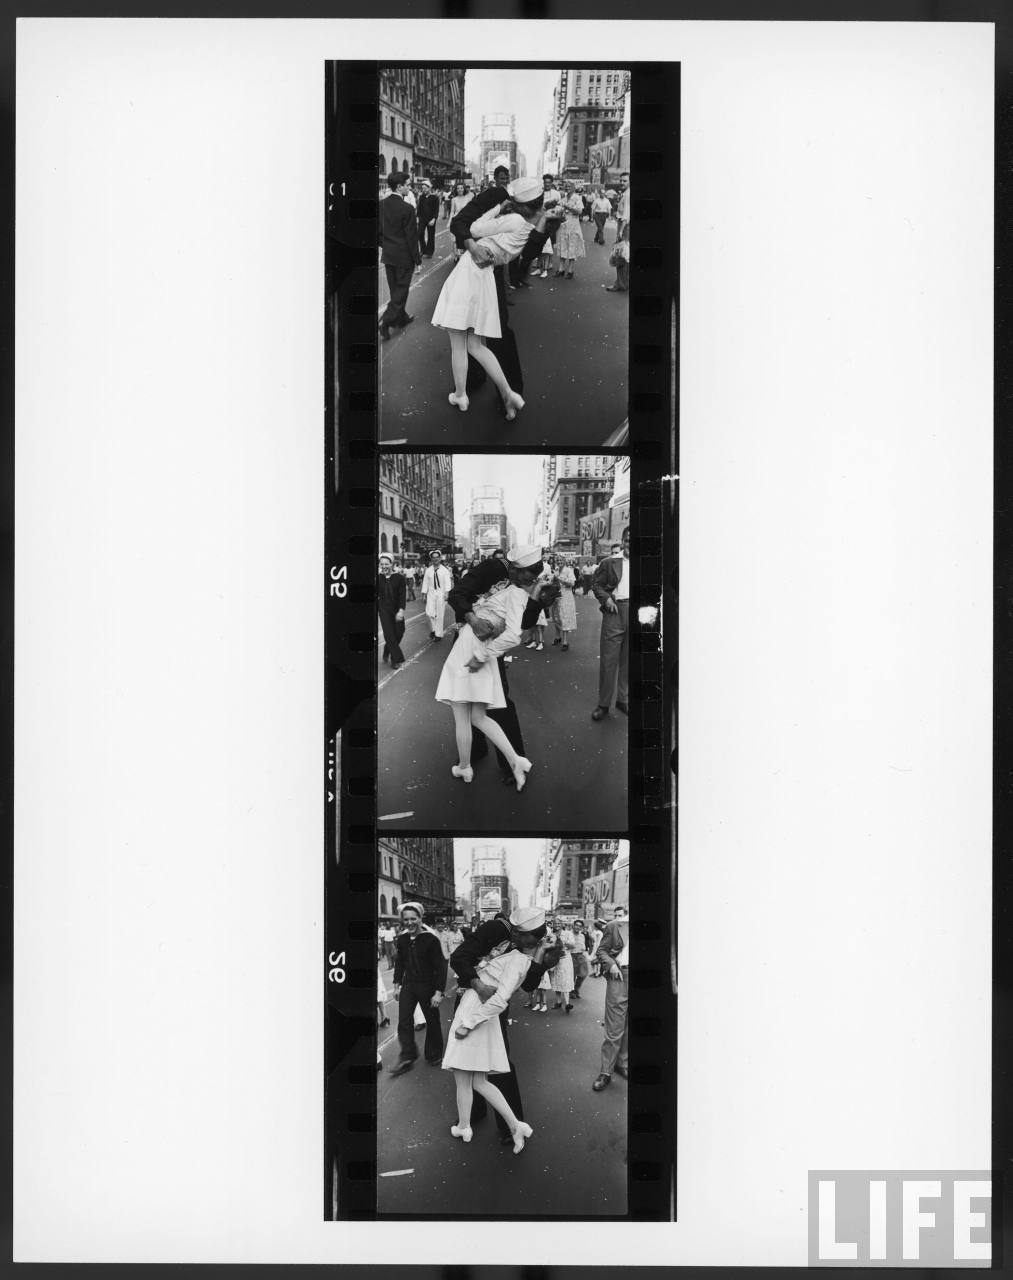 Three frames from photographer Alfred Eisenstaedt's famed set of the sailor kissing the nurse and other images of the Times Square VJ-Day celebrations.